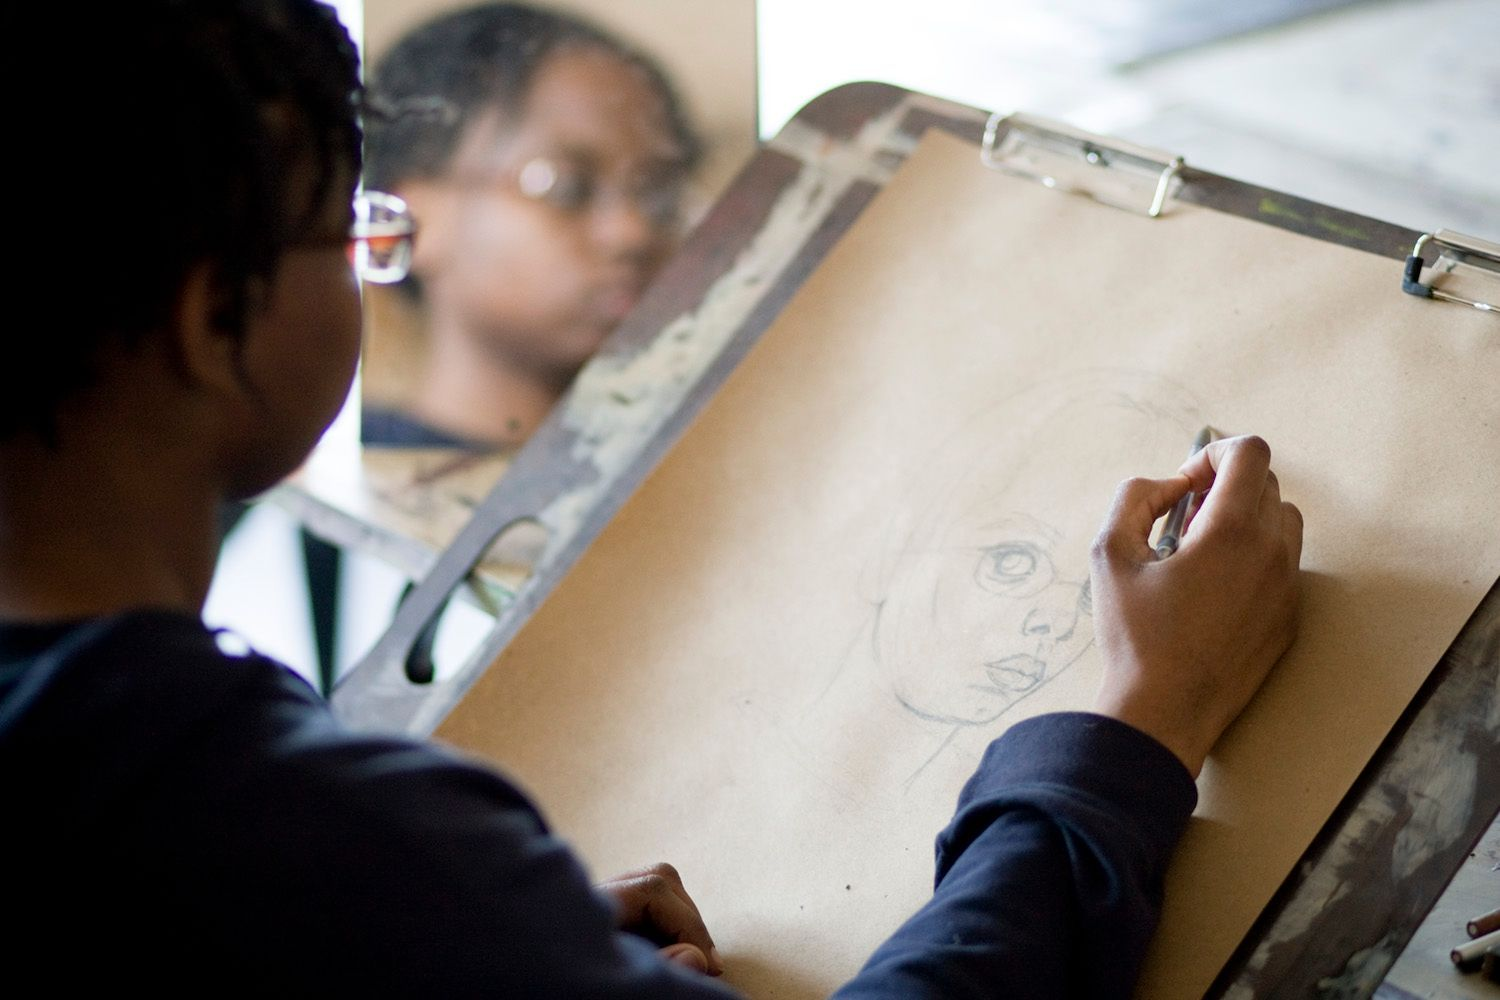 A picture of a BAA student from over the shoulder while they look in a mirror and start a self-portrait.